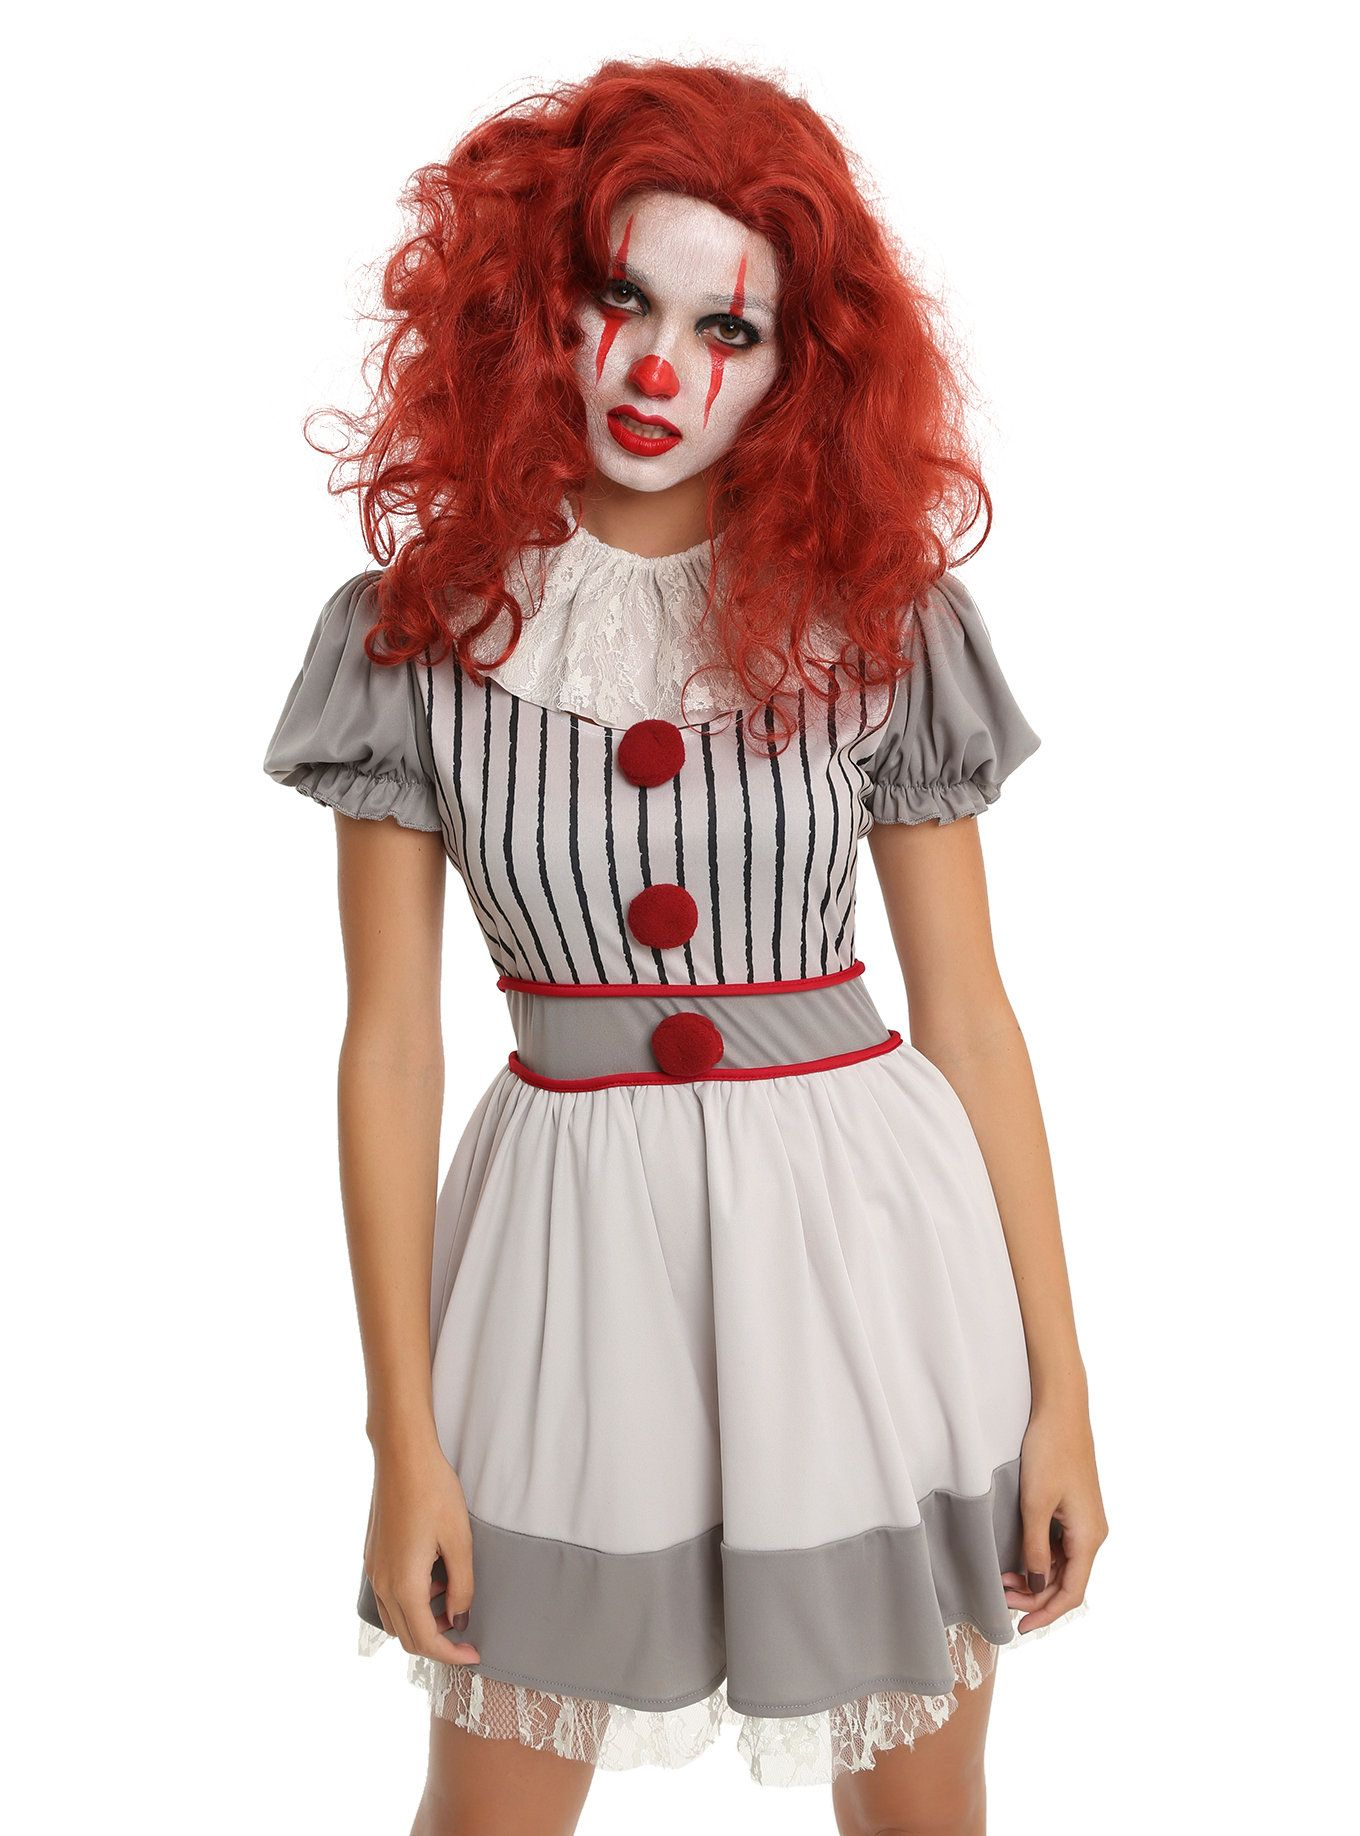 Scary Clown Costume Dress Scary clown costume, Clown